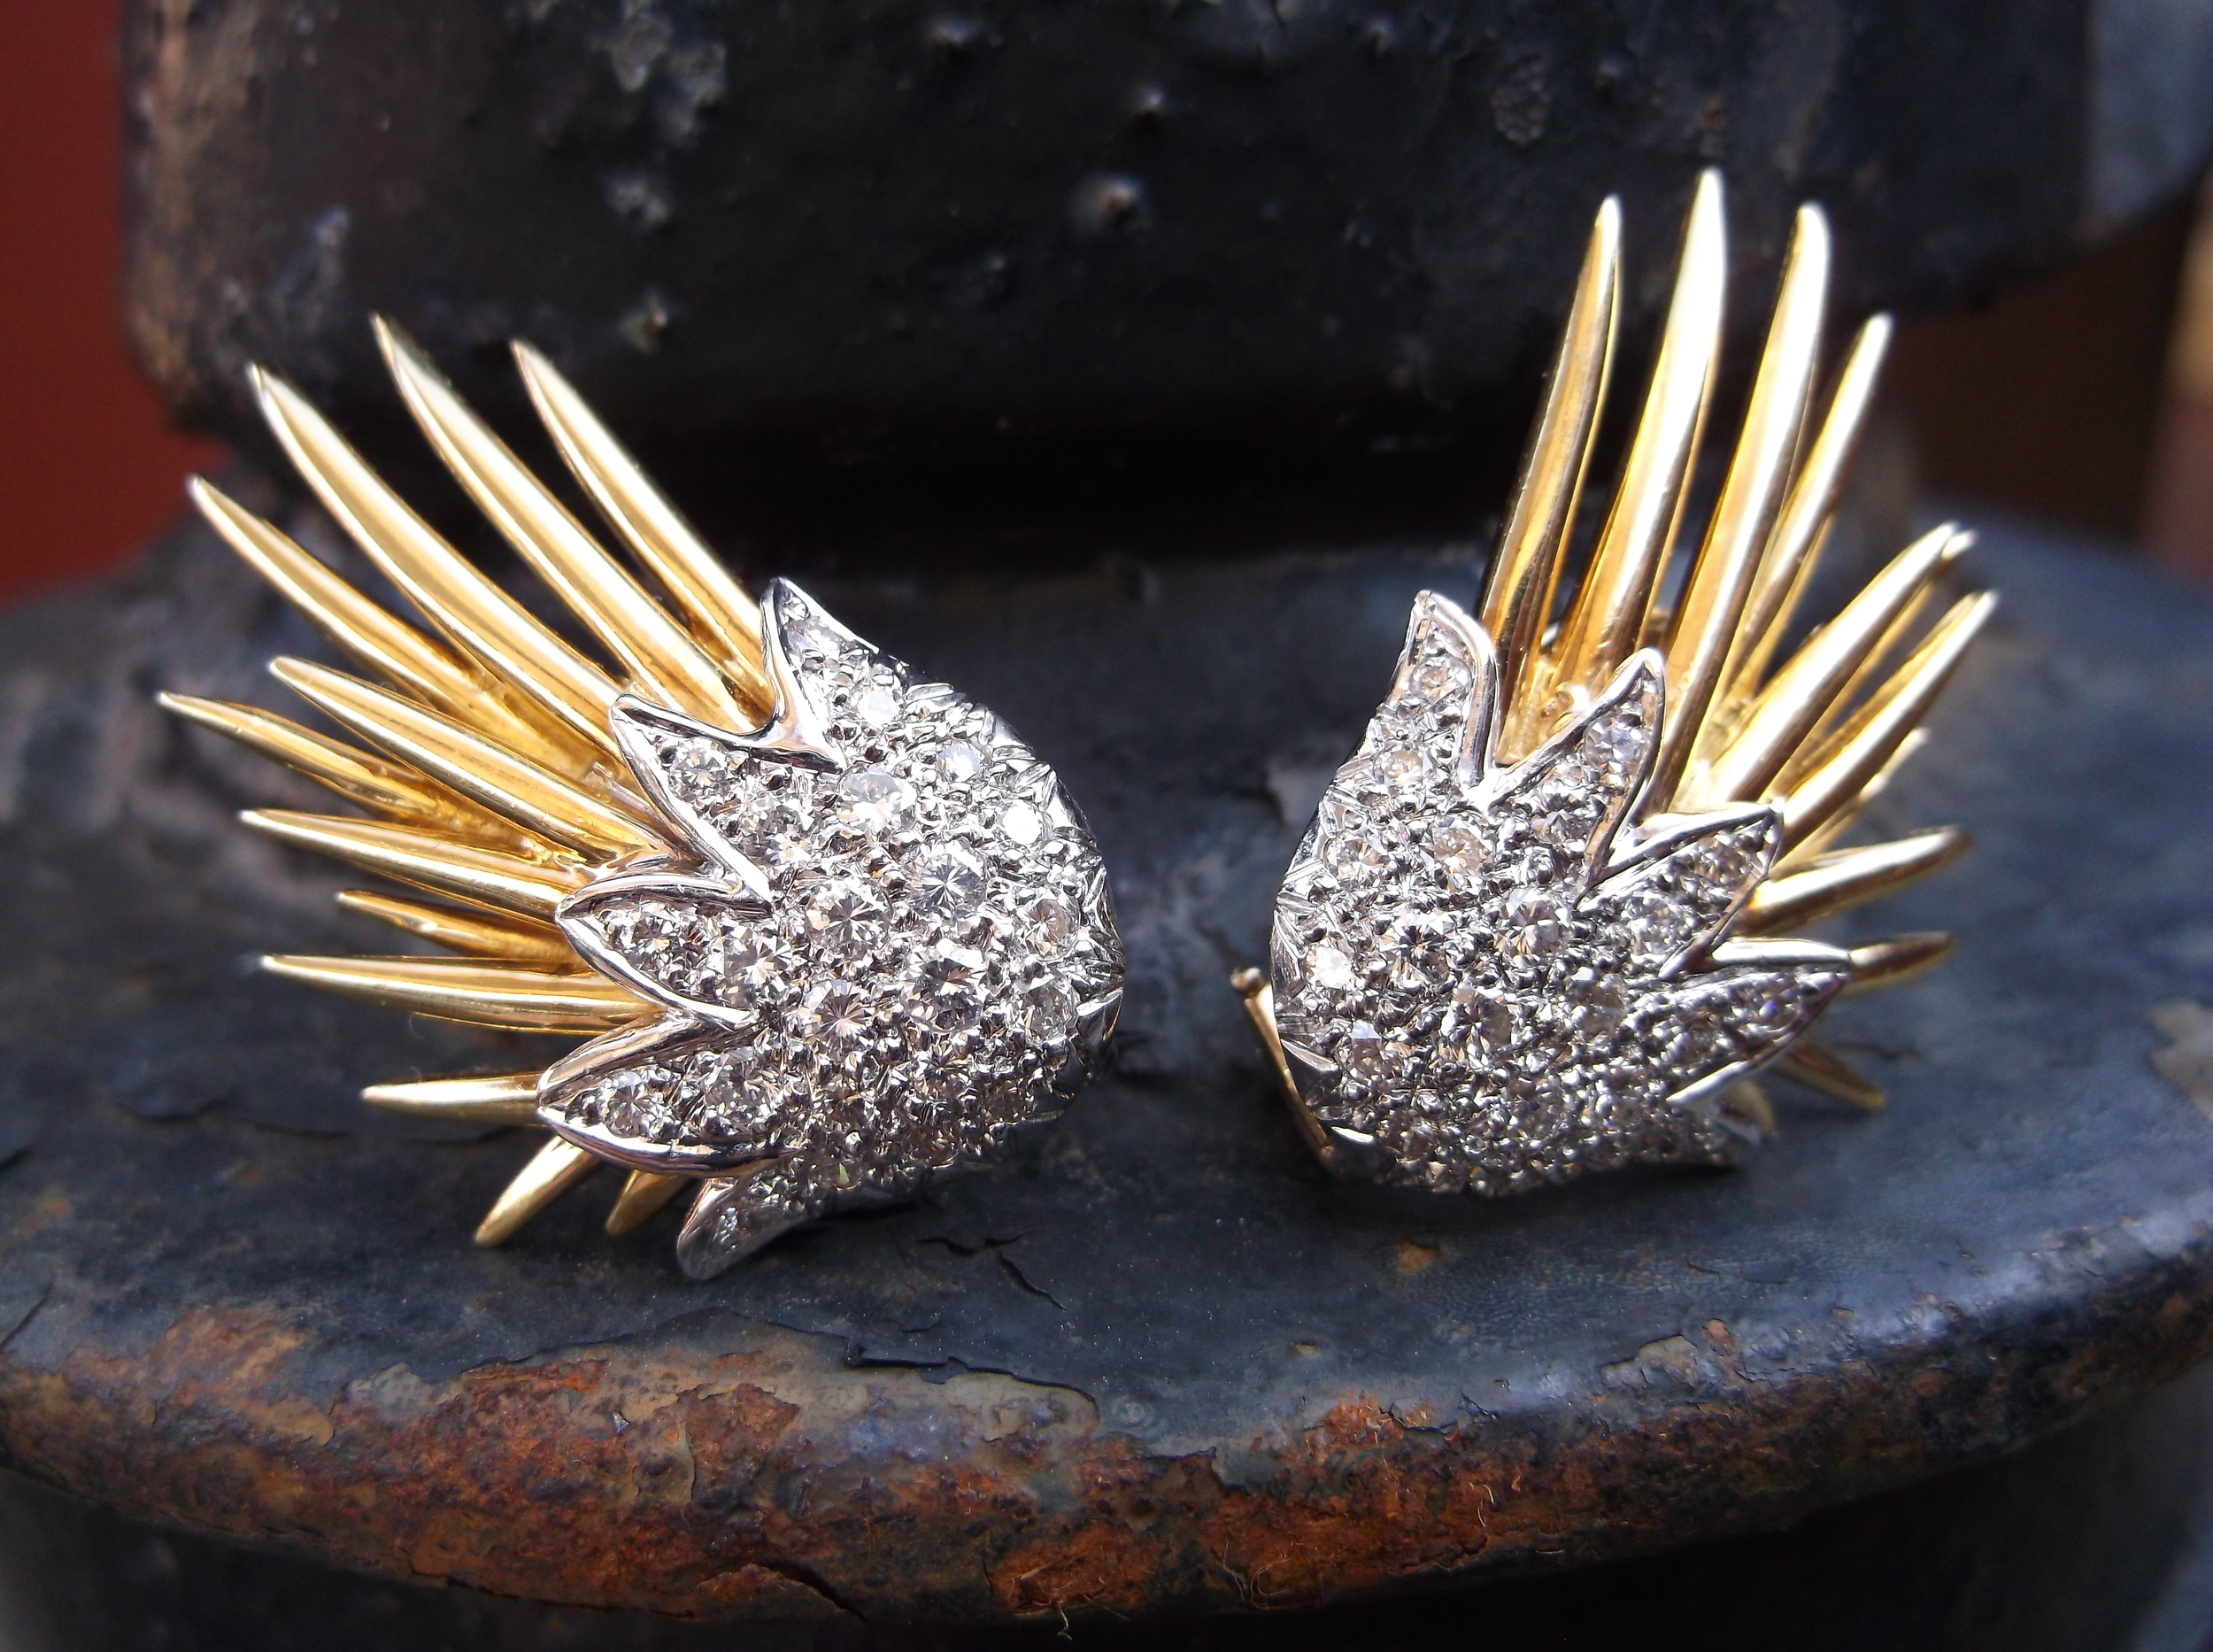 SOLD - Gorgeously unique yellow gold and diamond flame earrings with 1.20 carats total weight in diamonds.